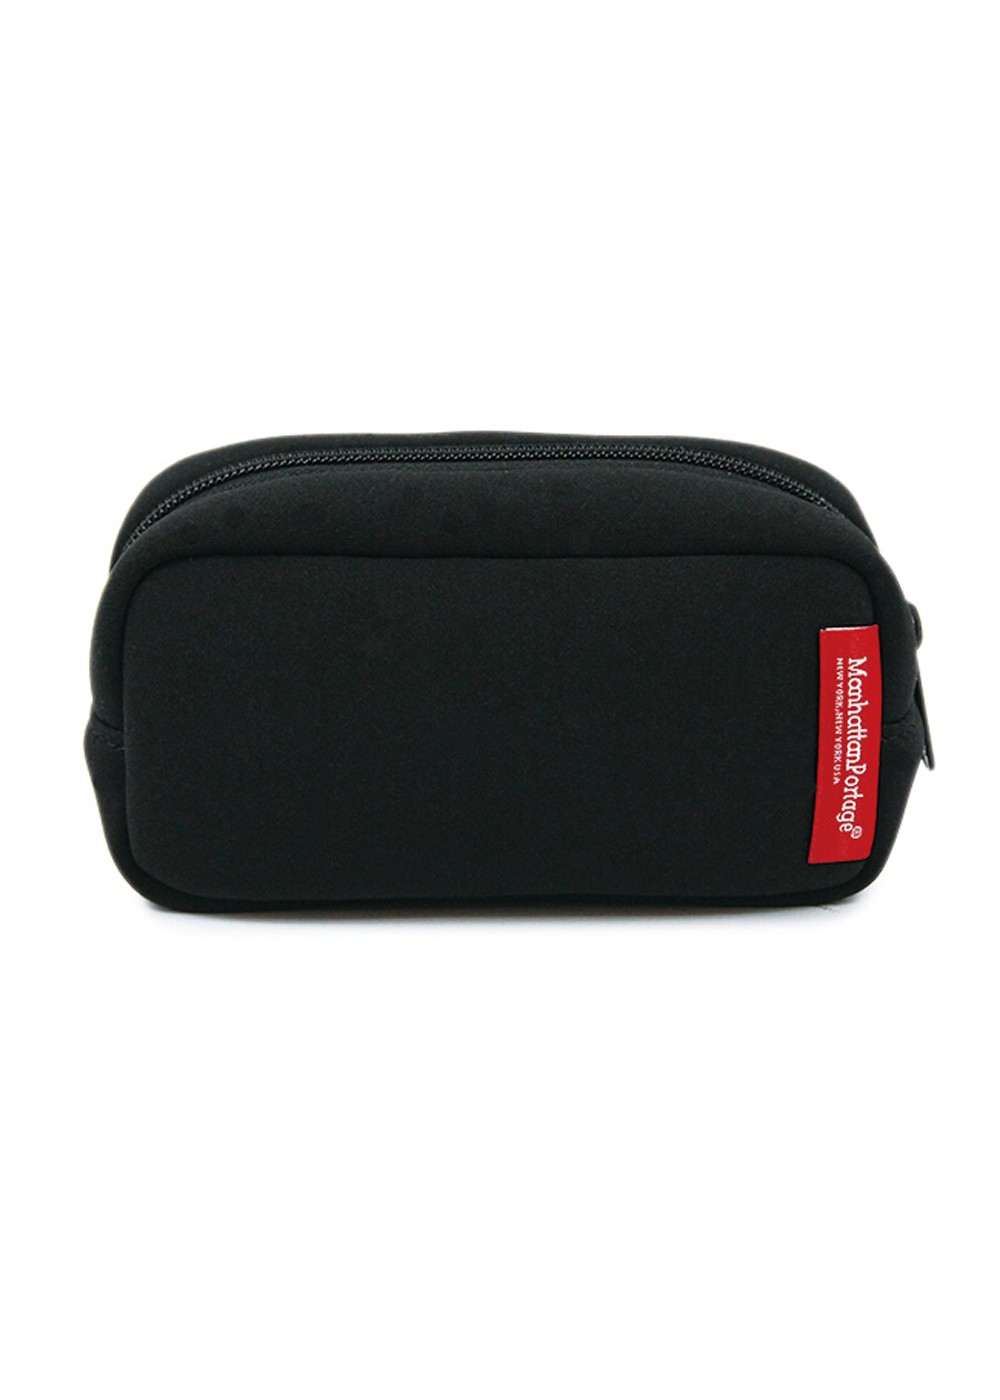 Neoprene Pouch|シルバー|ポーチ|Manhattan Portage